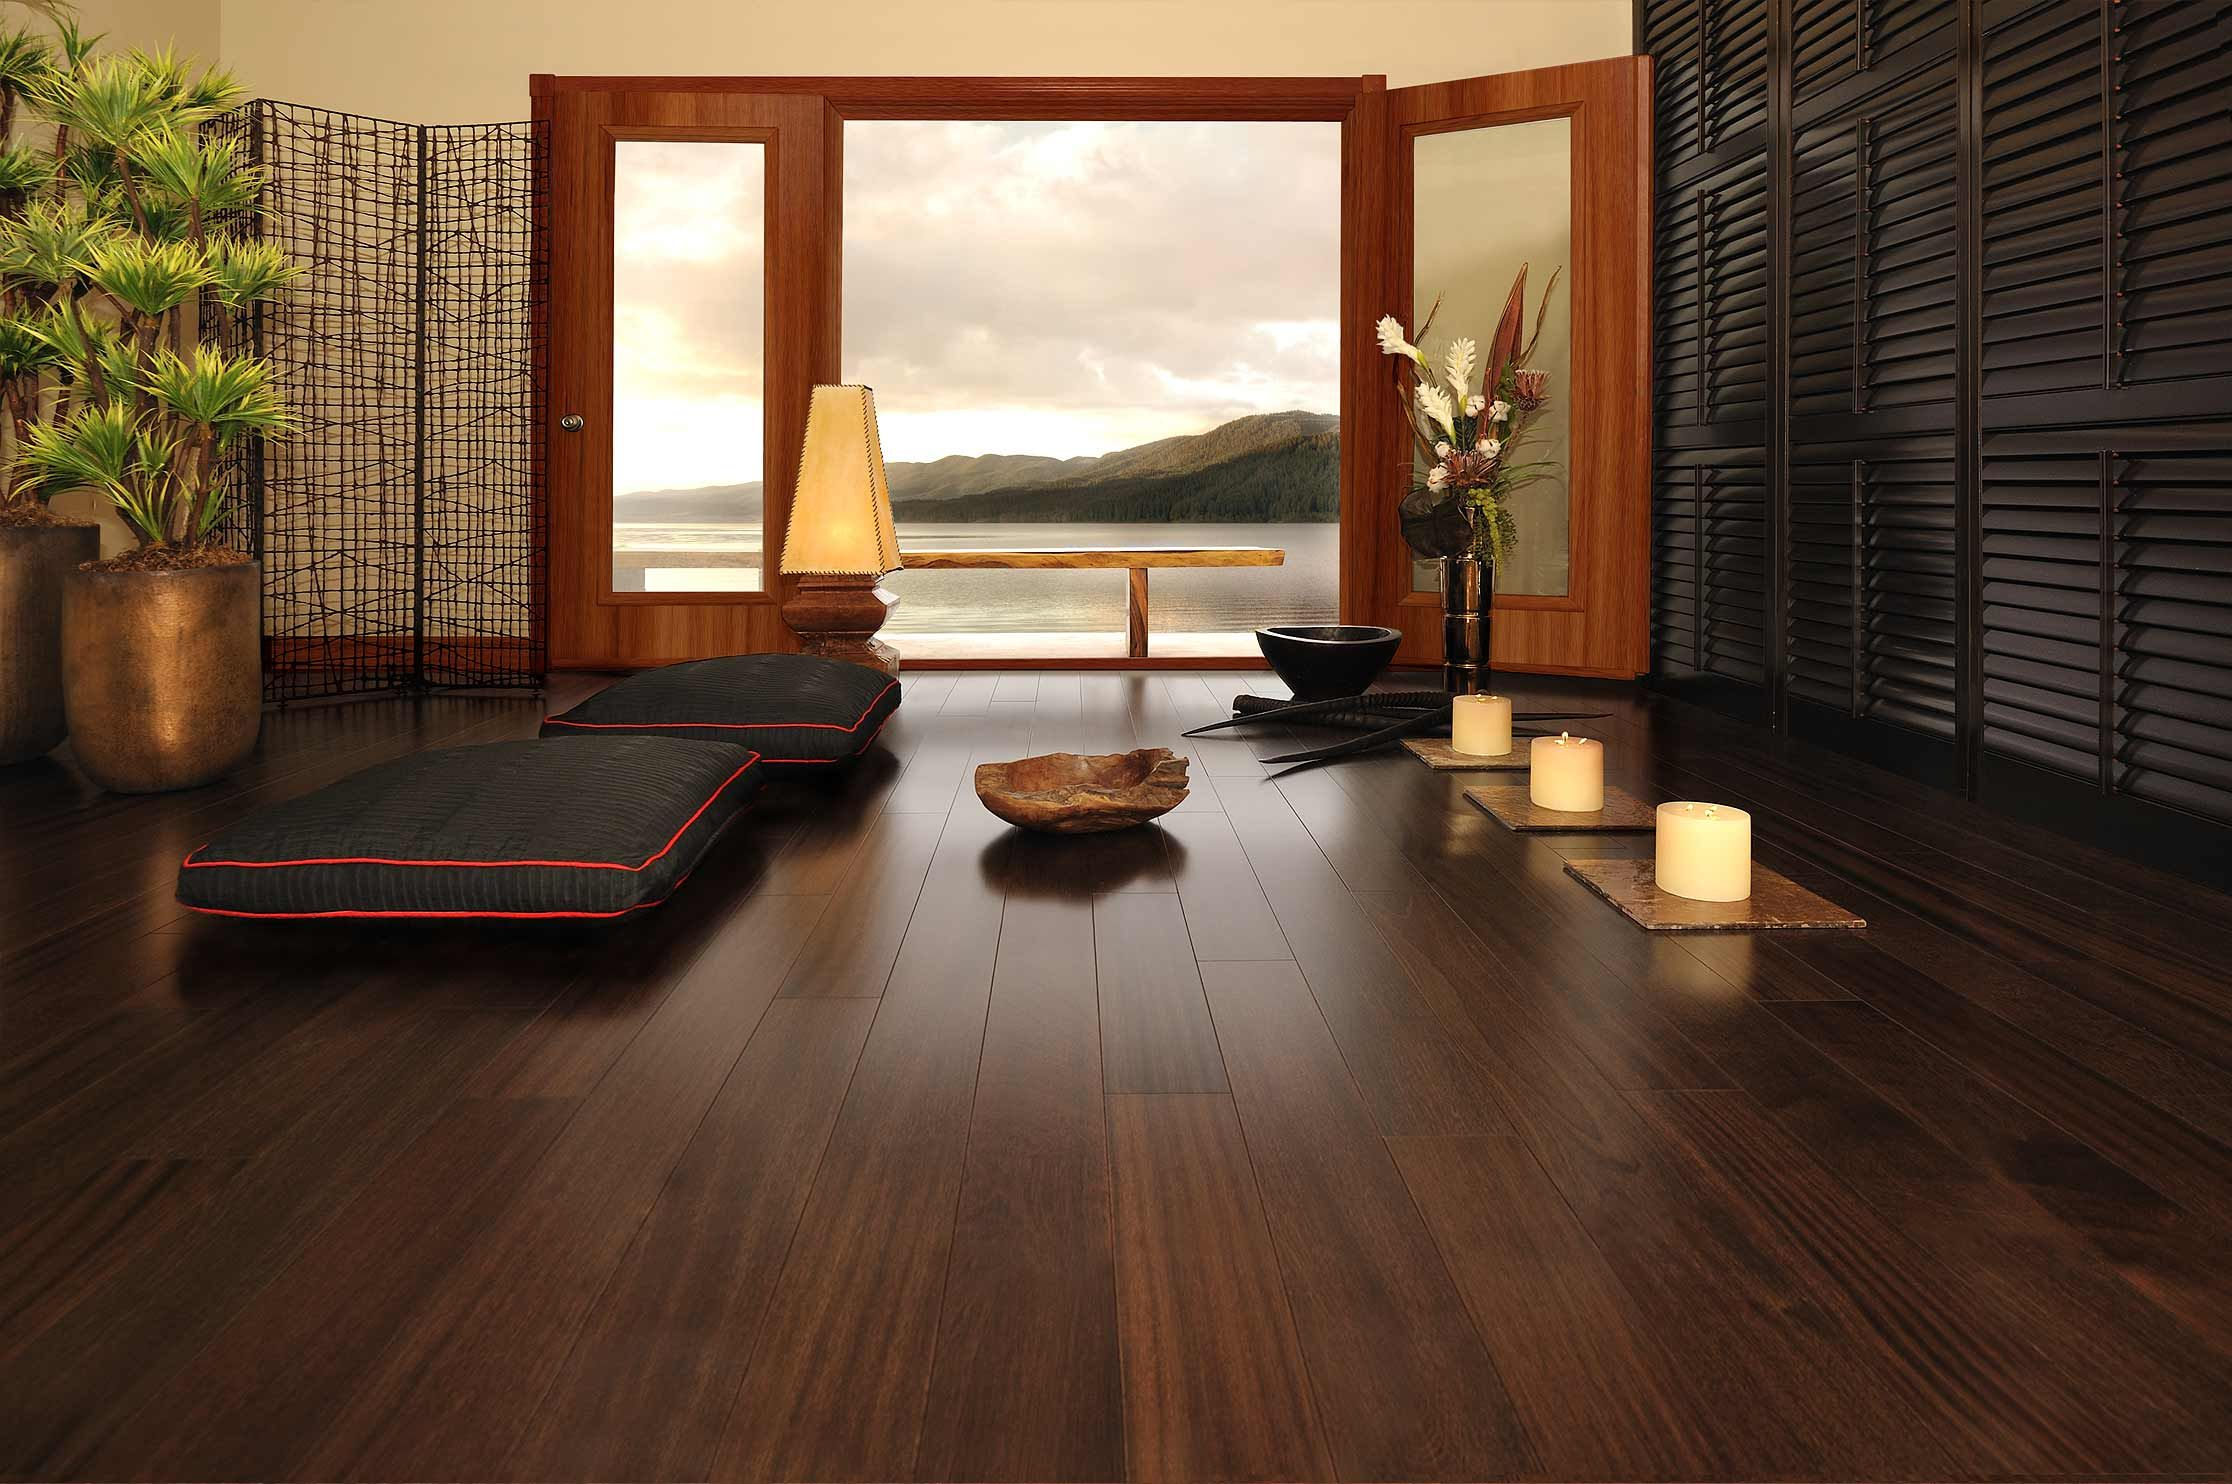 Best Wooden Flooring Ideas | Installing laminate wood flooring ...